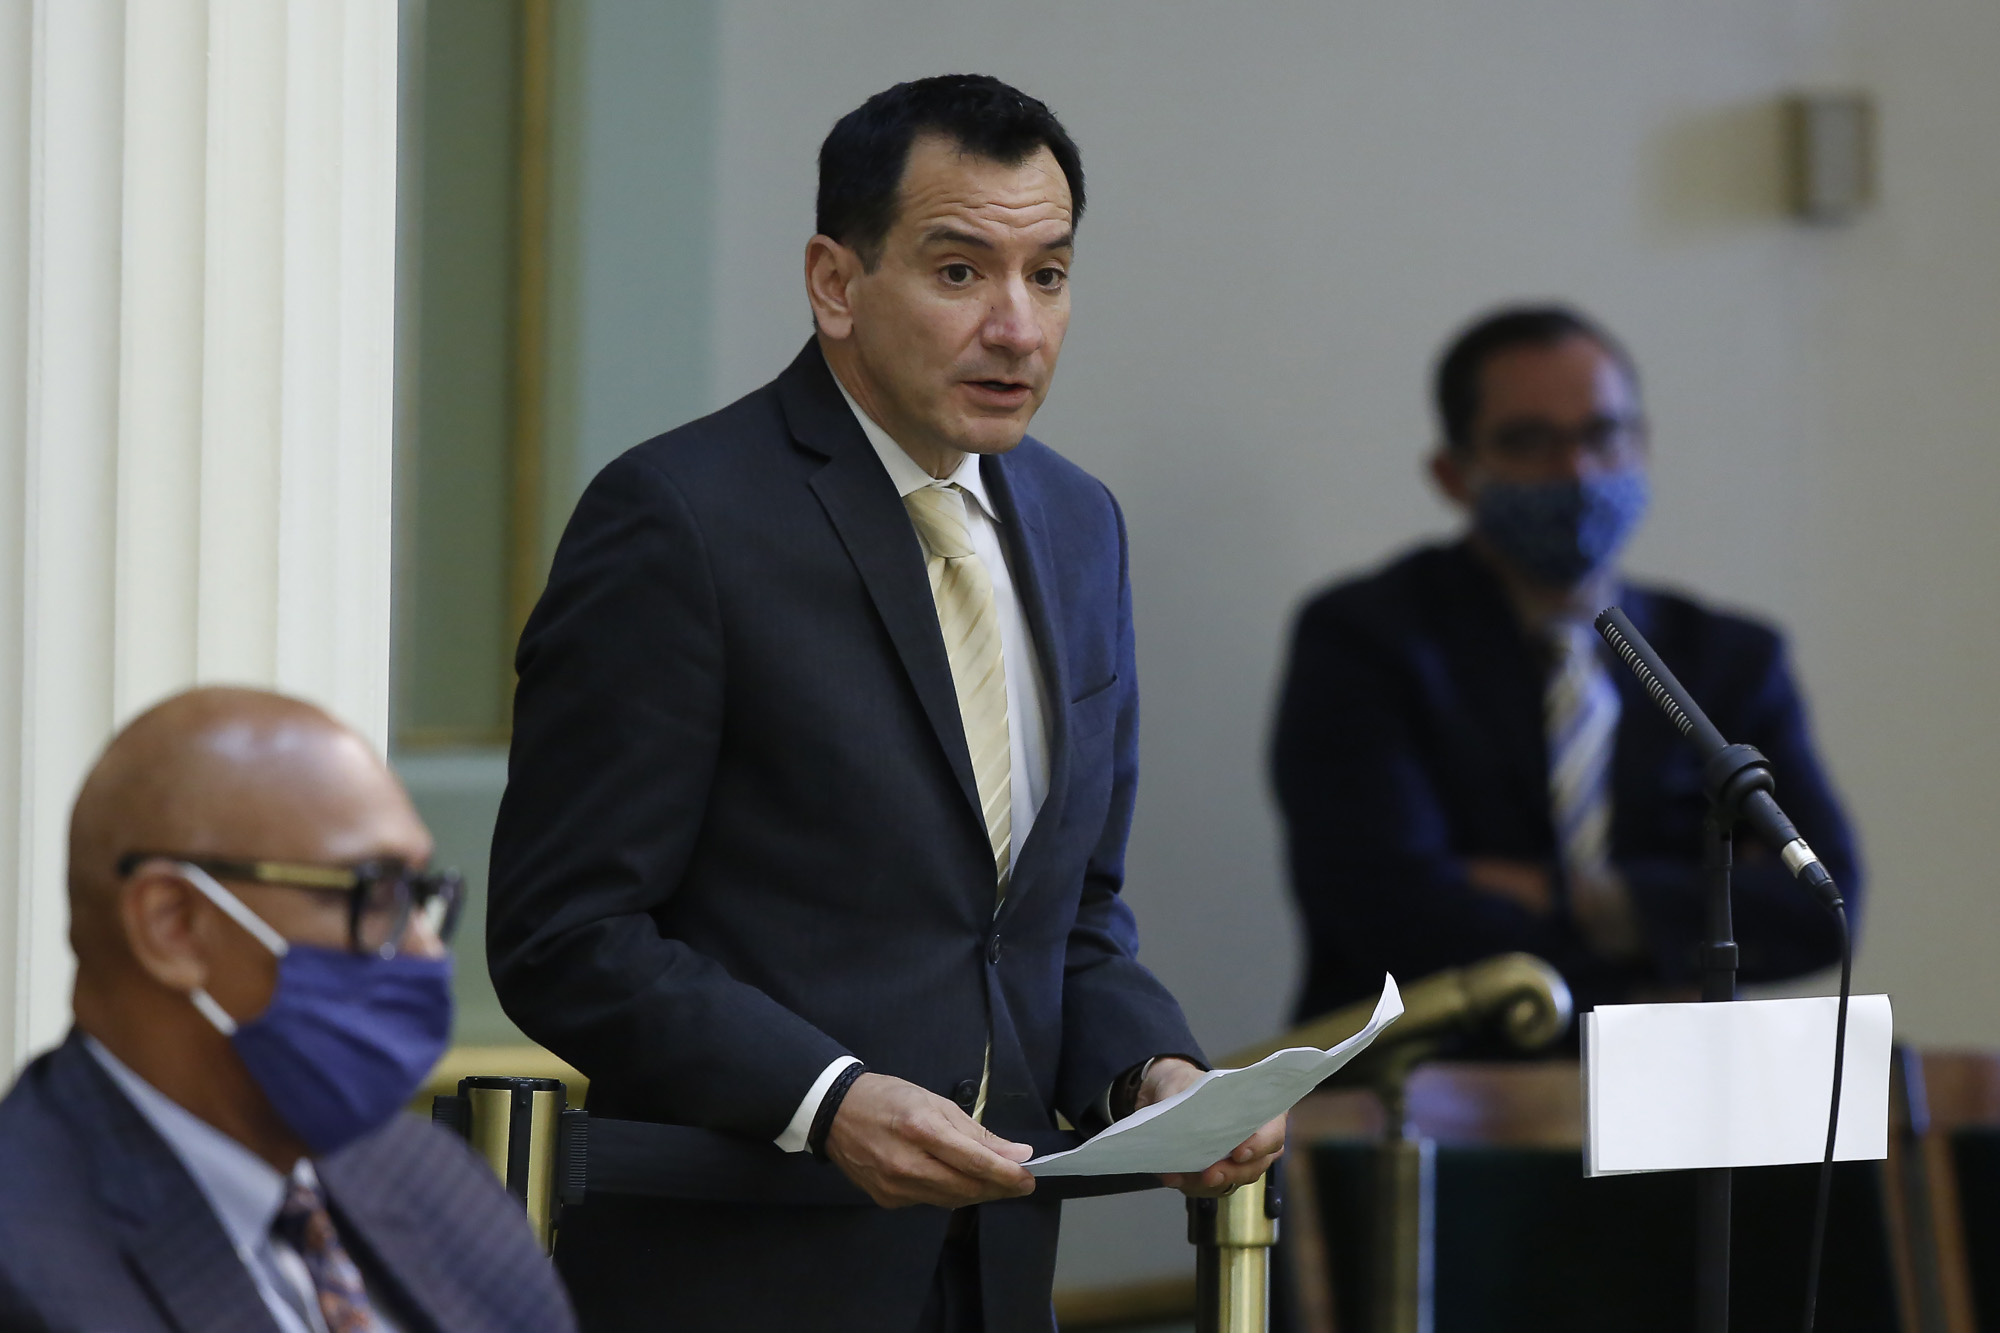 Assembly Speaker Anthony Rendon urges lawmakers to approve the state budget bill, at the Capitol on June 15, 2020. Photo by Rich Pedroncelli, AP Photo